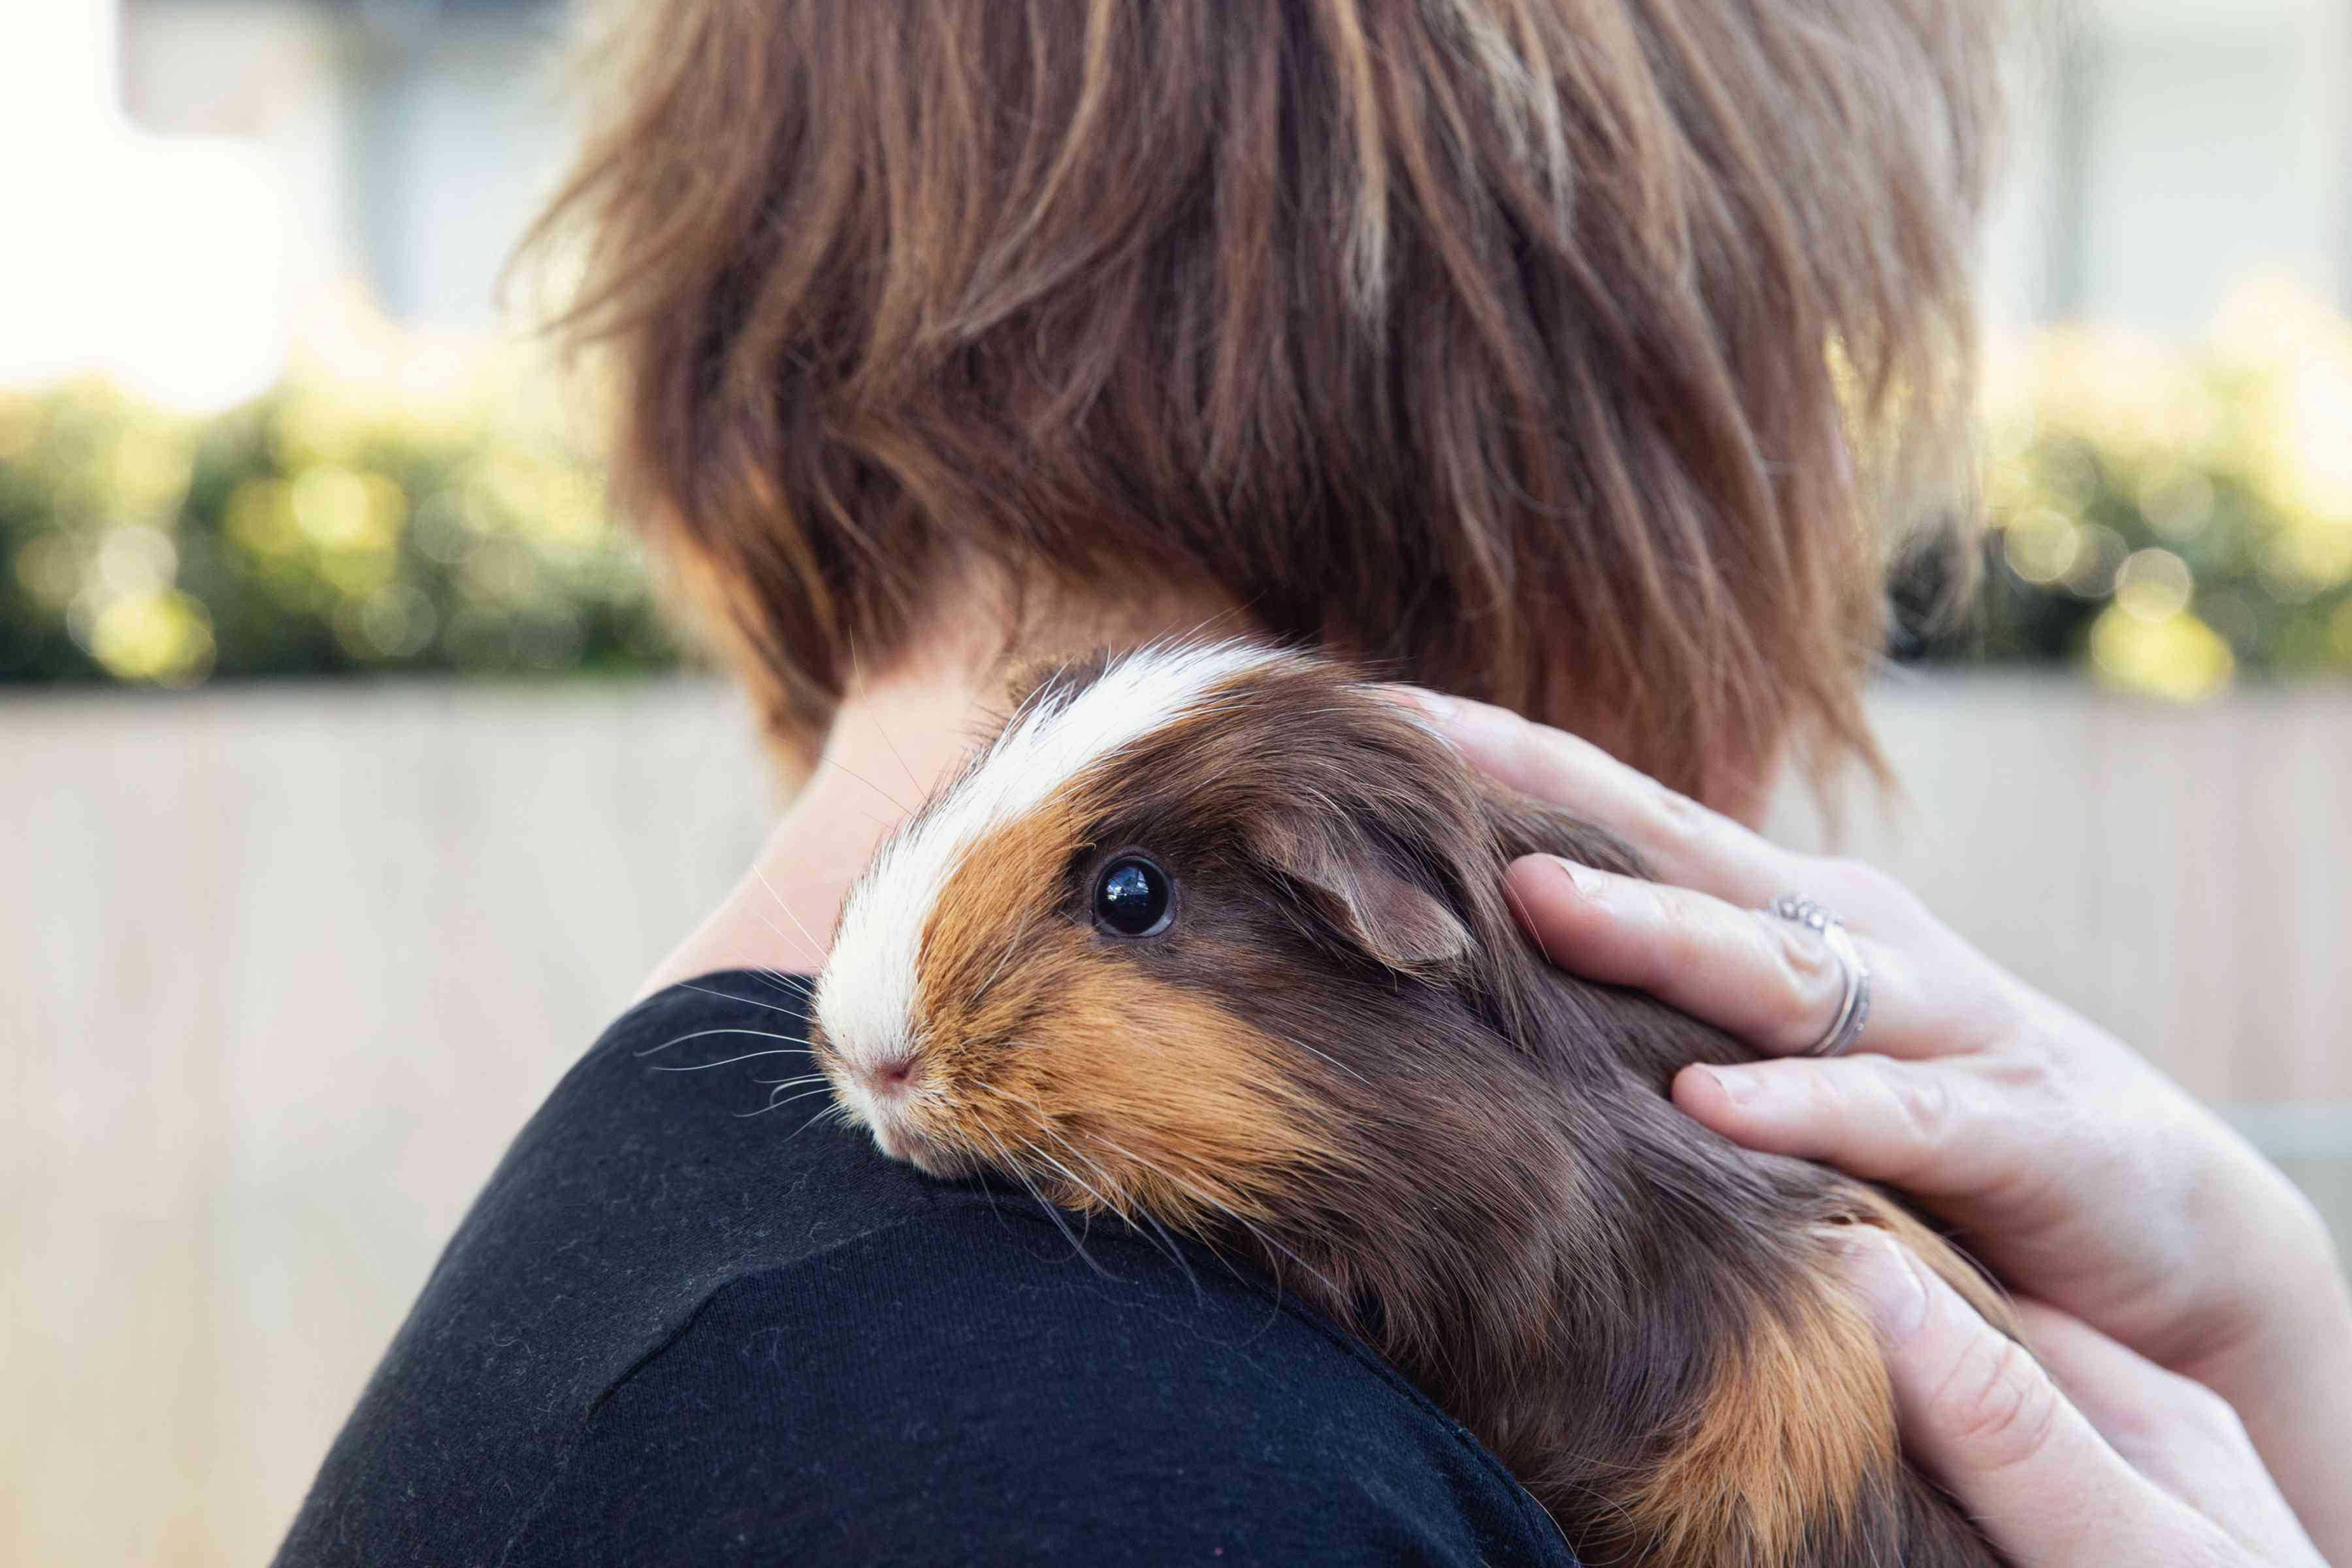 Guinea pig with brown and white hair resting on owner's shoulder